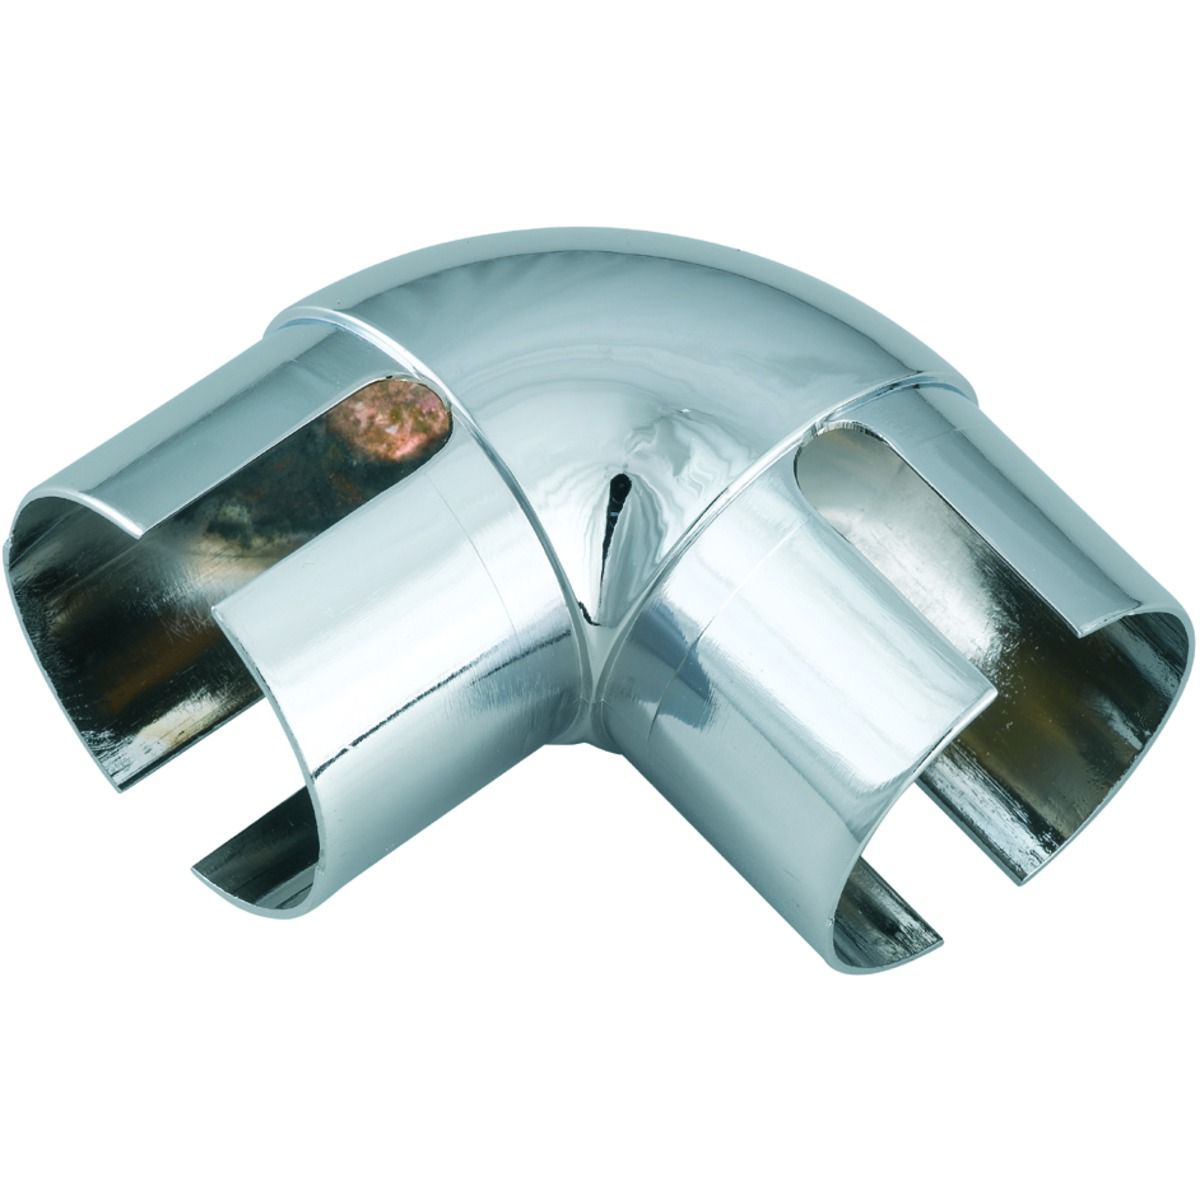 Compare prices for Chrome Handrail 90 Degree Elbow